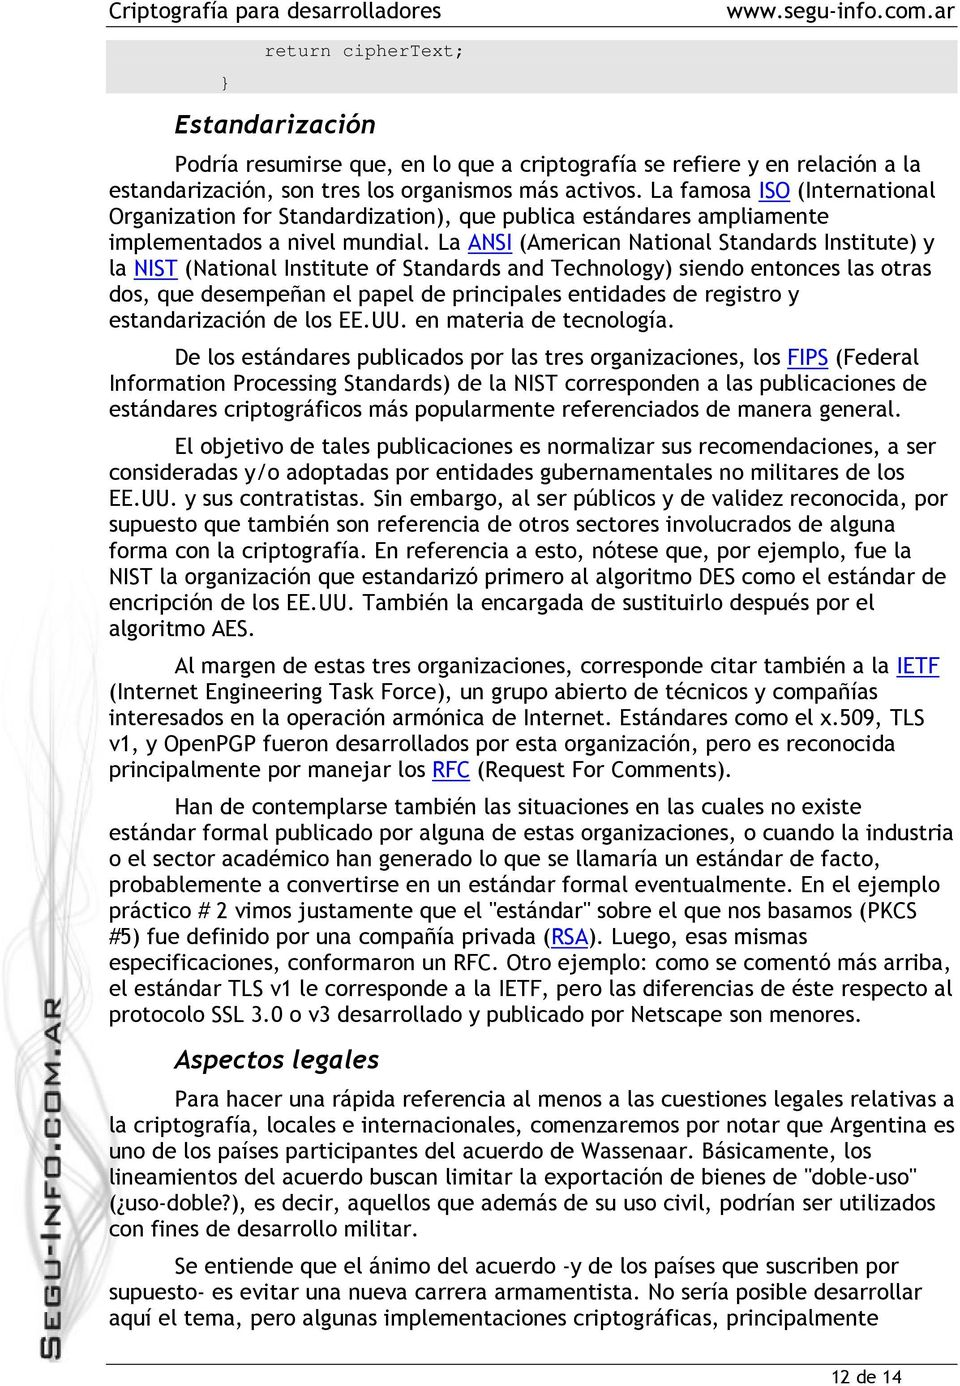 La ANSI (American National Standards Institute) y la NIST (National Institute of Standards and Technology) siendo entonces las otras dos, que desempeñan el papel de principales entidades de registro